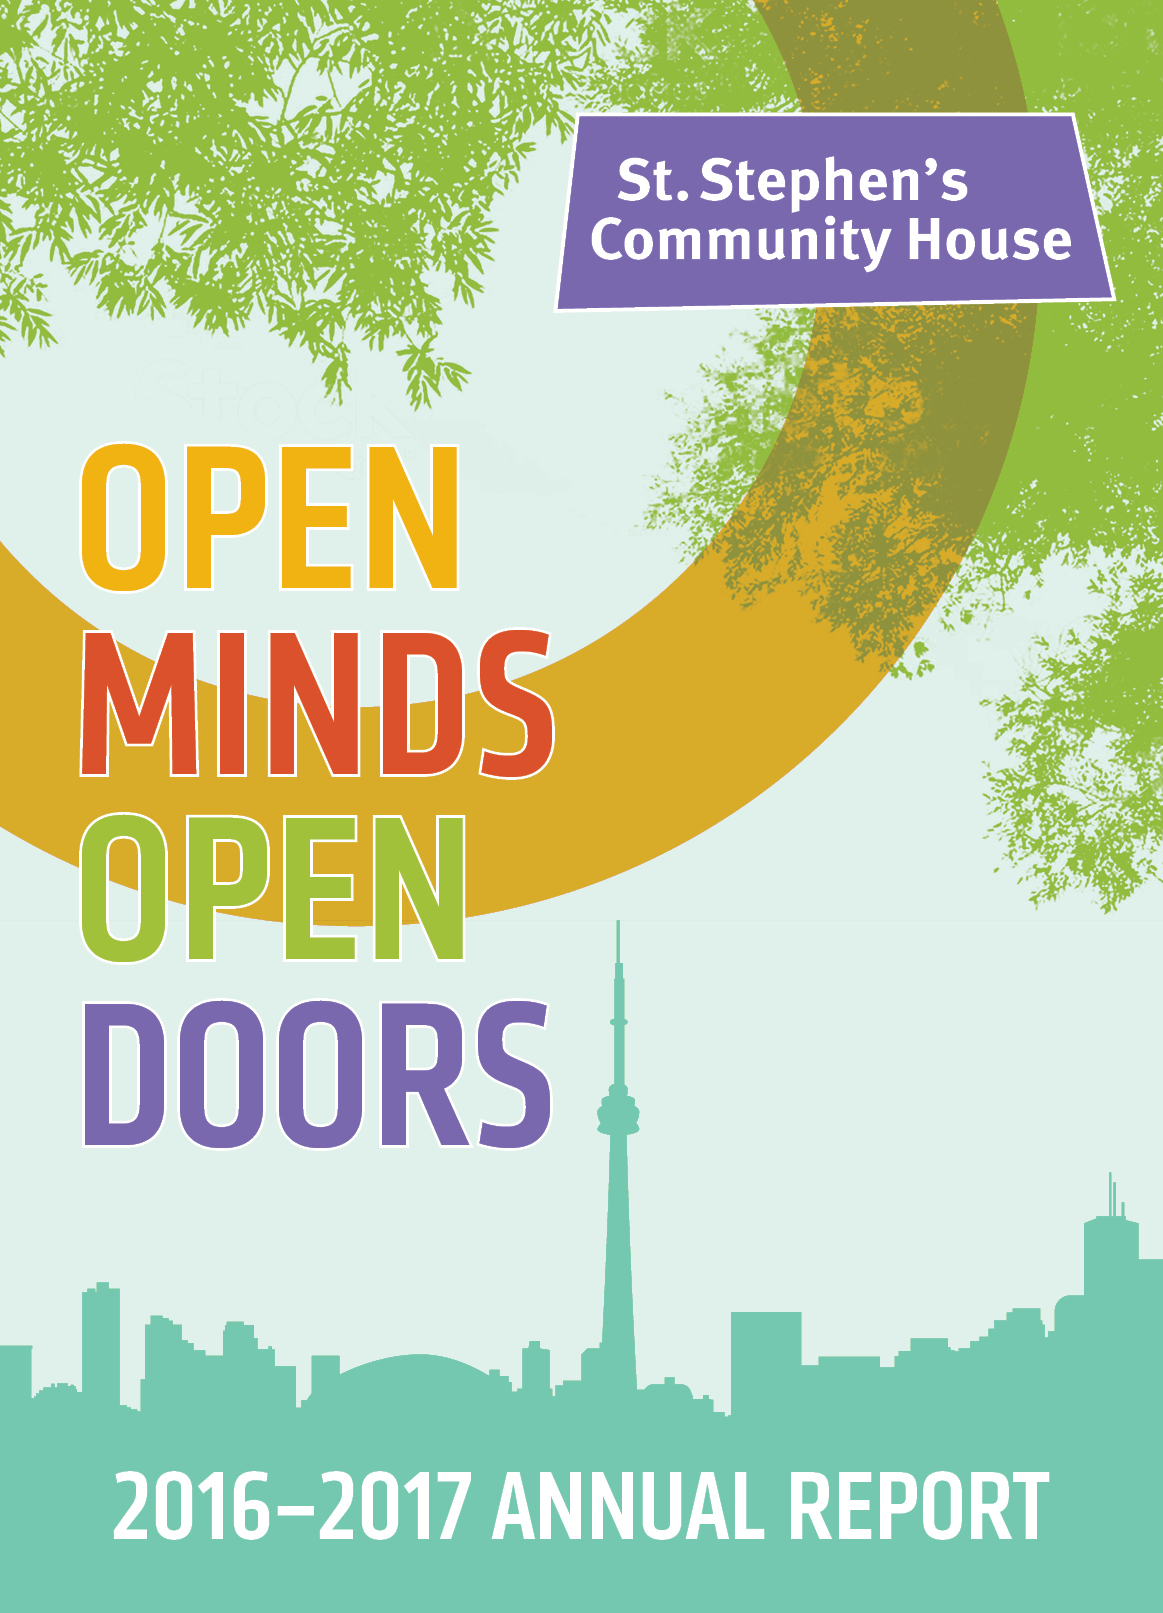 St. Stephen's Community House Annual Report 2016-2017: Open Minds, Open Doors